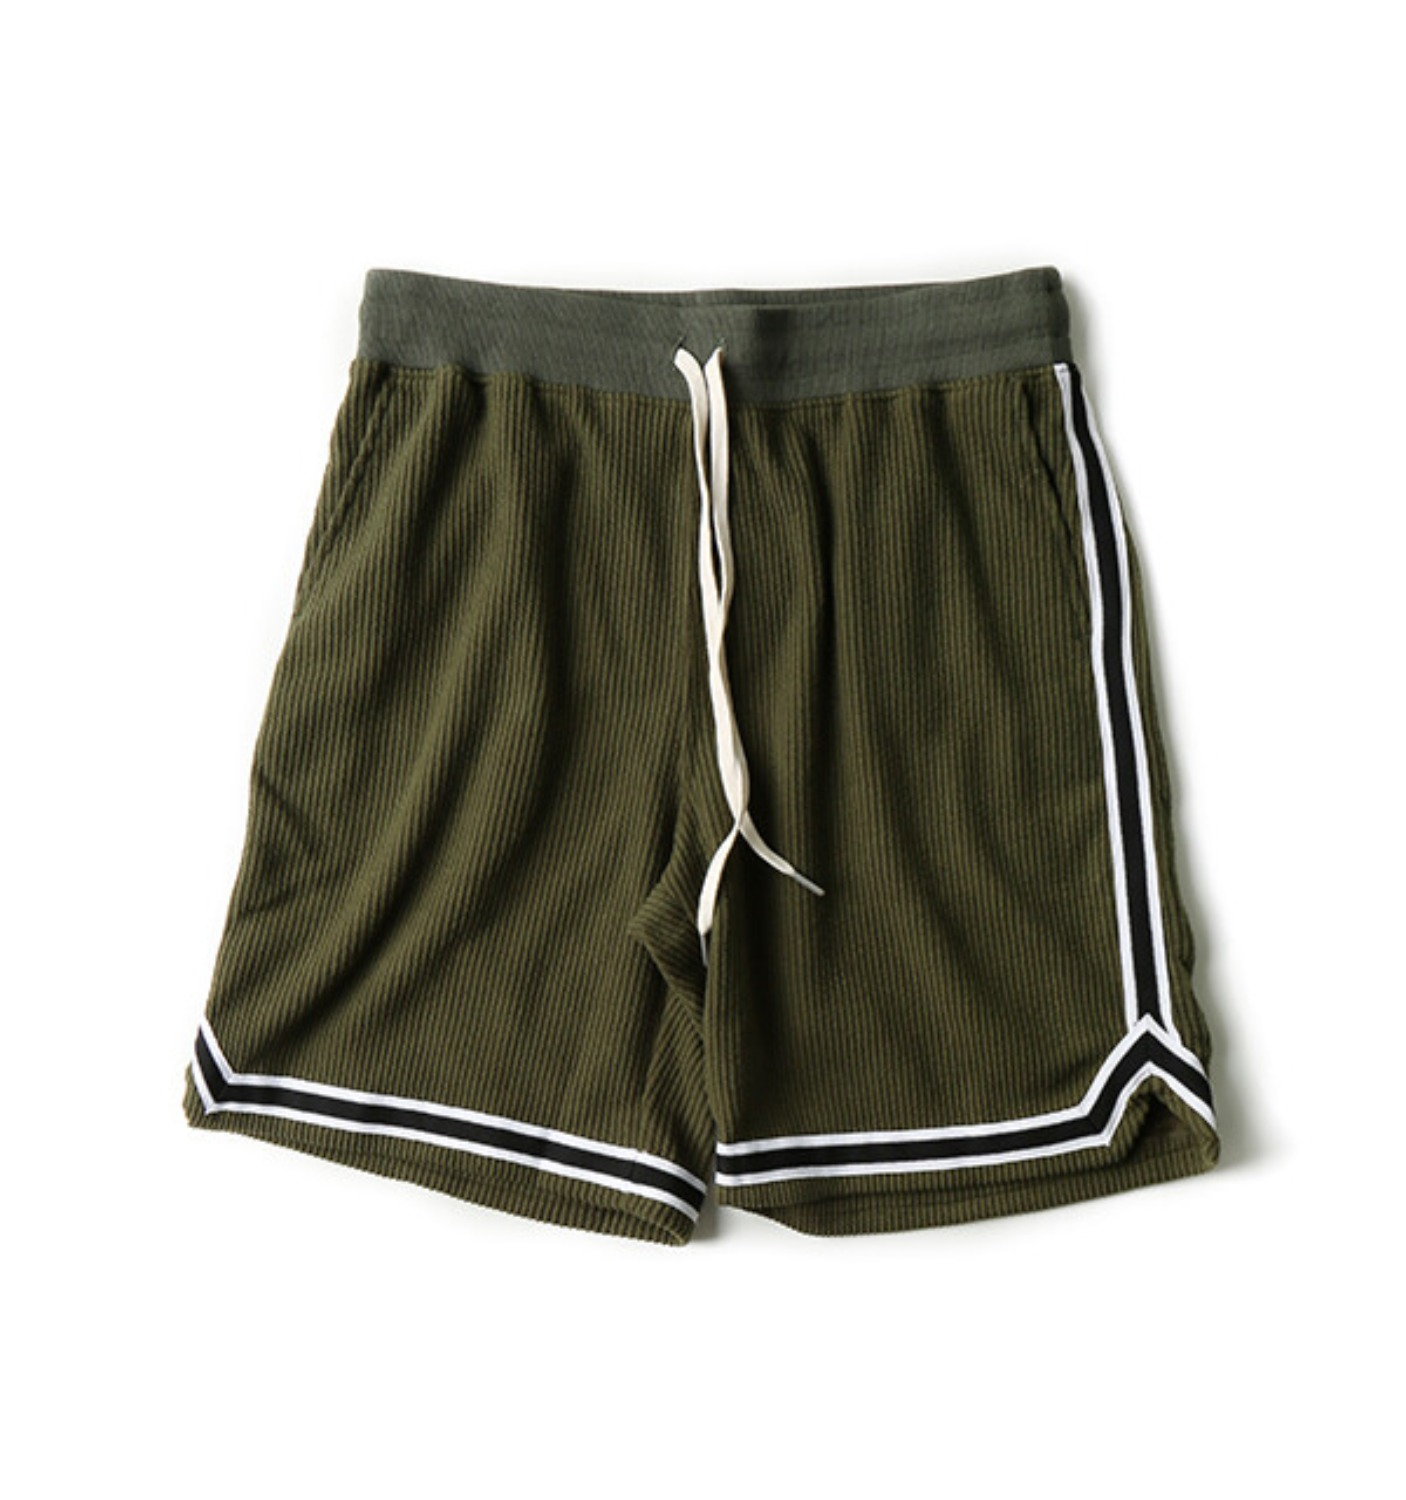 CORDUROY BASKETBALL SHORTS OLIVE